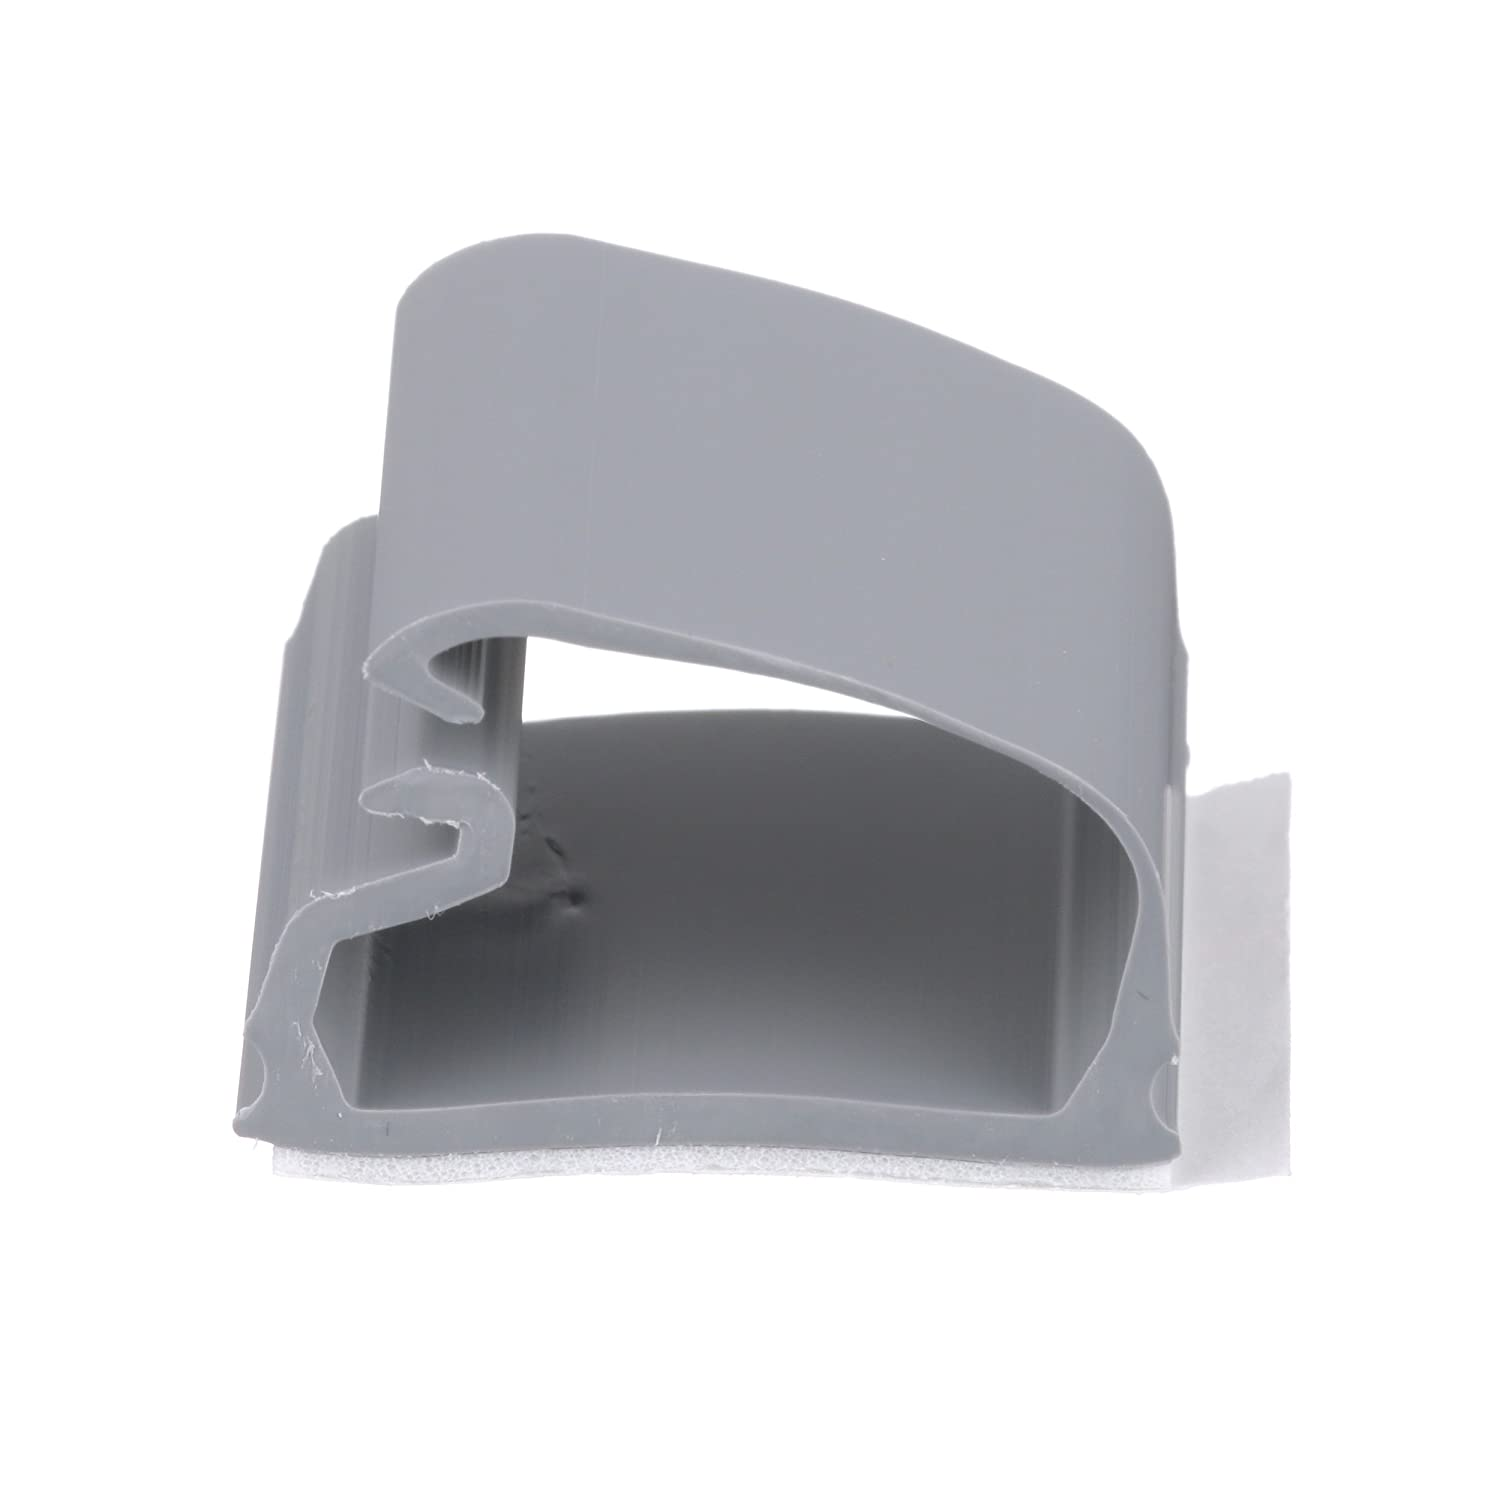 Panduit LC5 A C8 Latching Clip Adhesive Backed PVC 0.36 Inch Bundle Light Gray 100 Pack